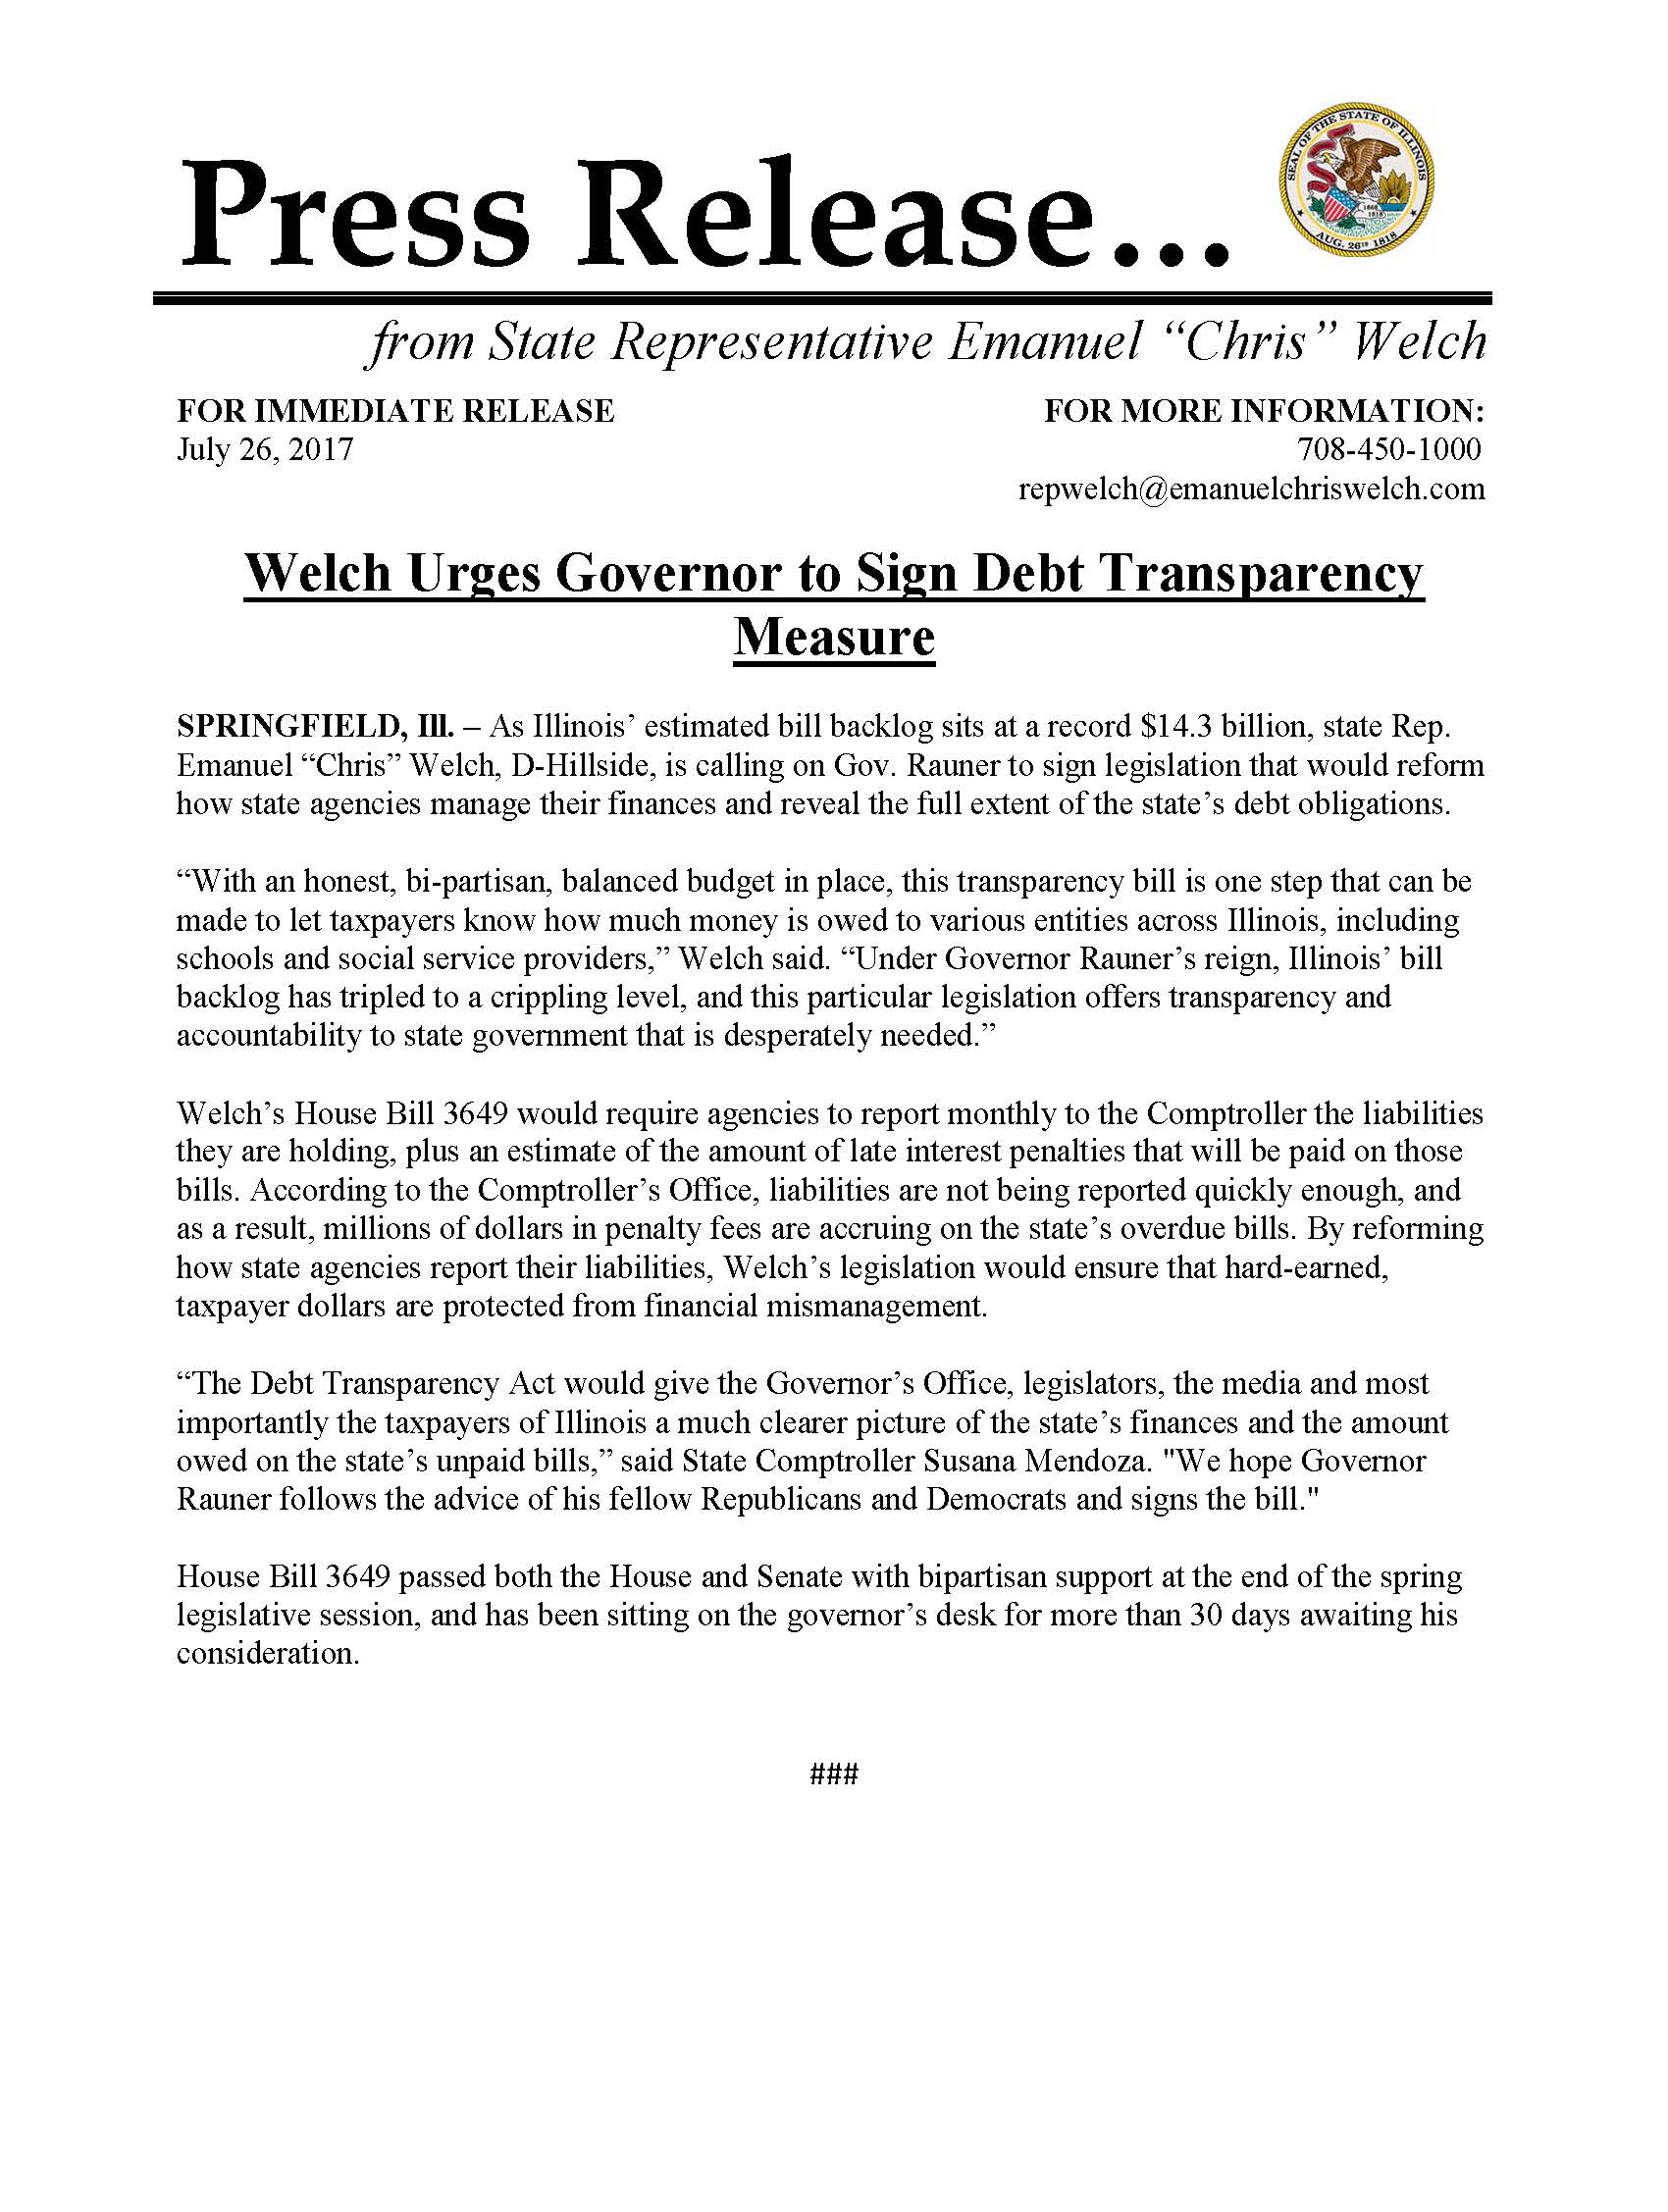 Welch Urges Governor to Sign Debt Transparency Measure  (July 26, 2017)